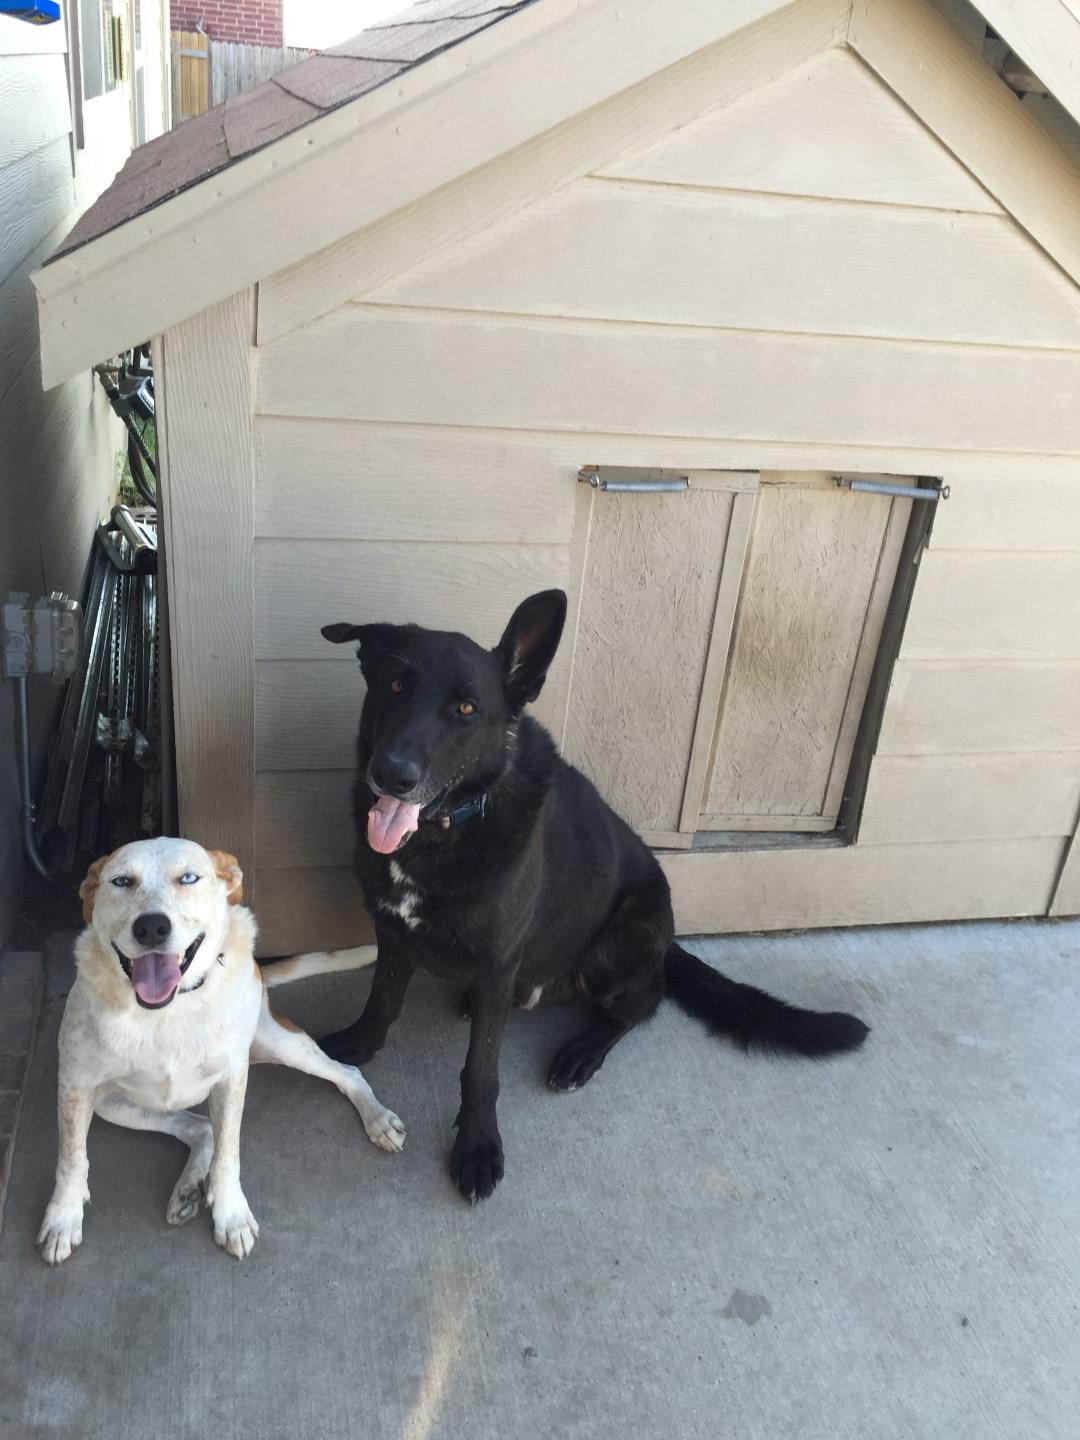 Air Conditioned Dog House Plans Lovely I Built My Two Dogs A Doghouse Equipped with An Air